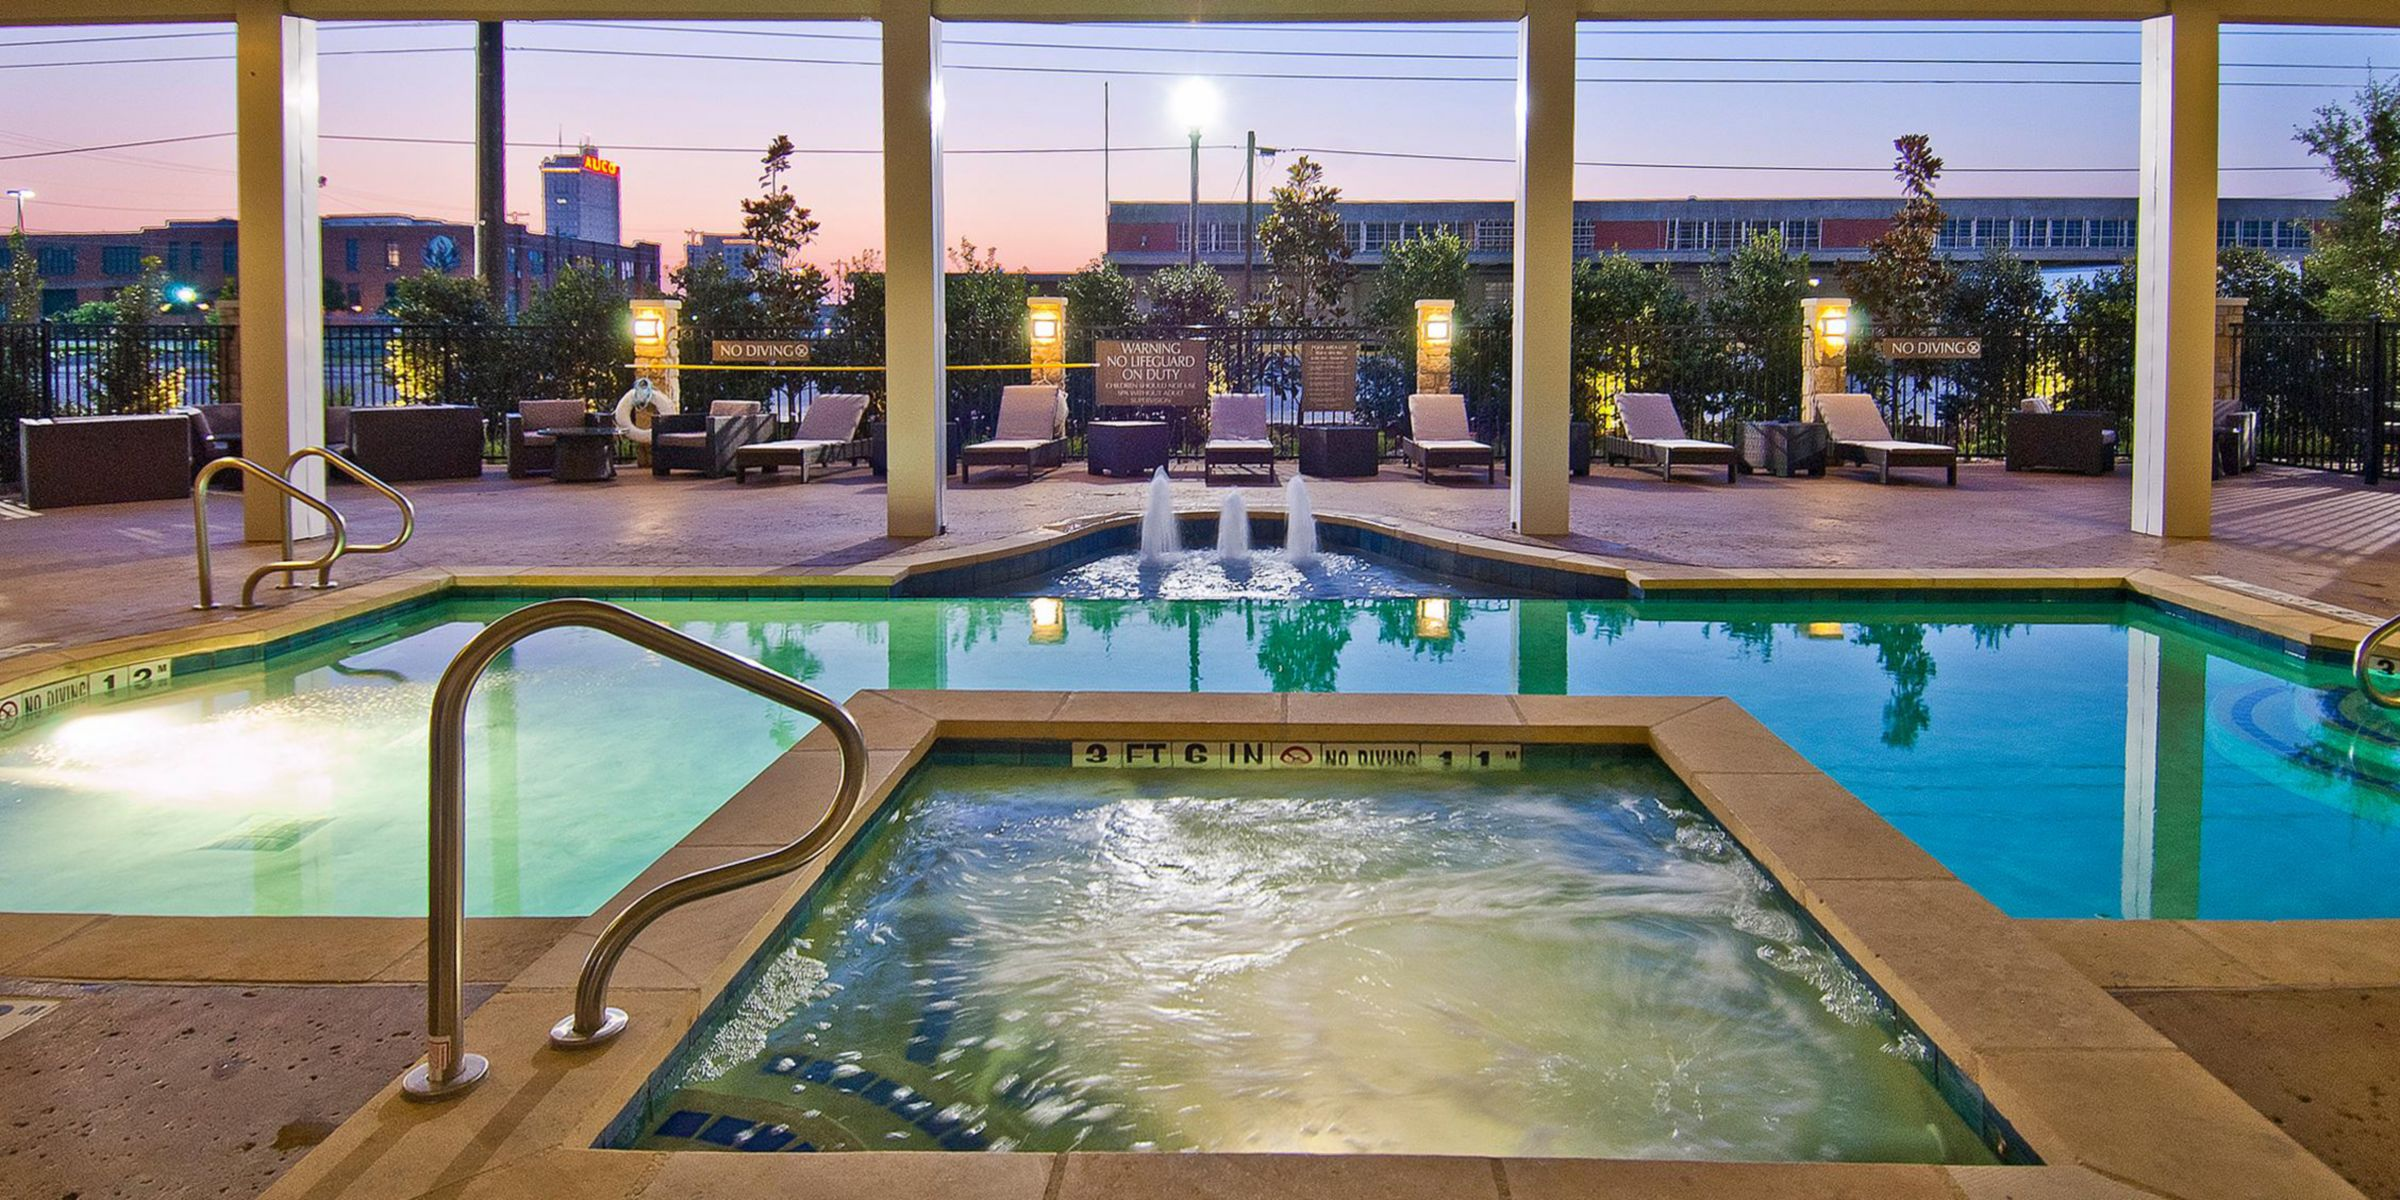 Pool at Hotel Indigo Waco-Baylor. #hotelindigo #waco #pool